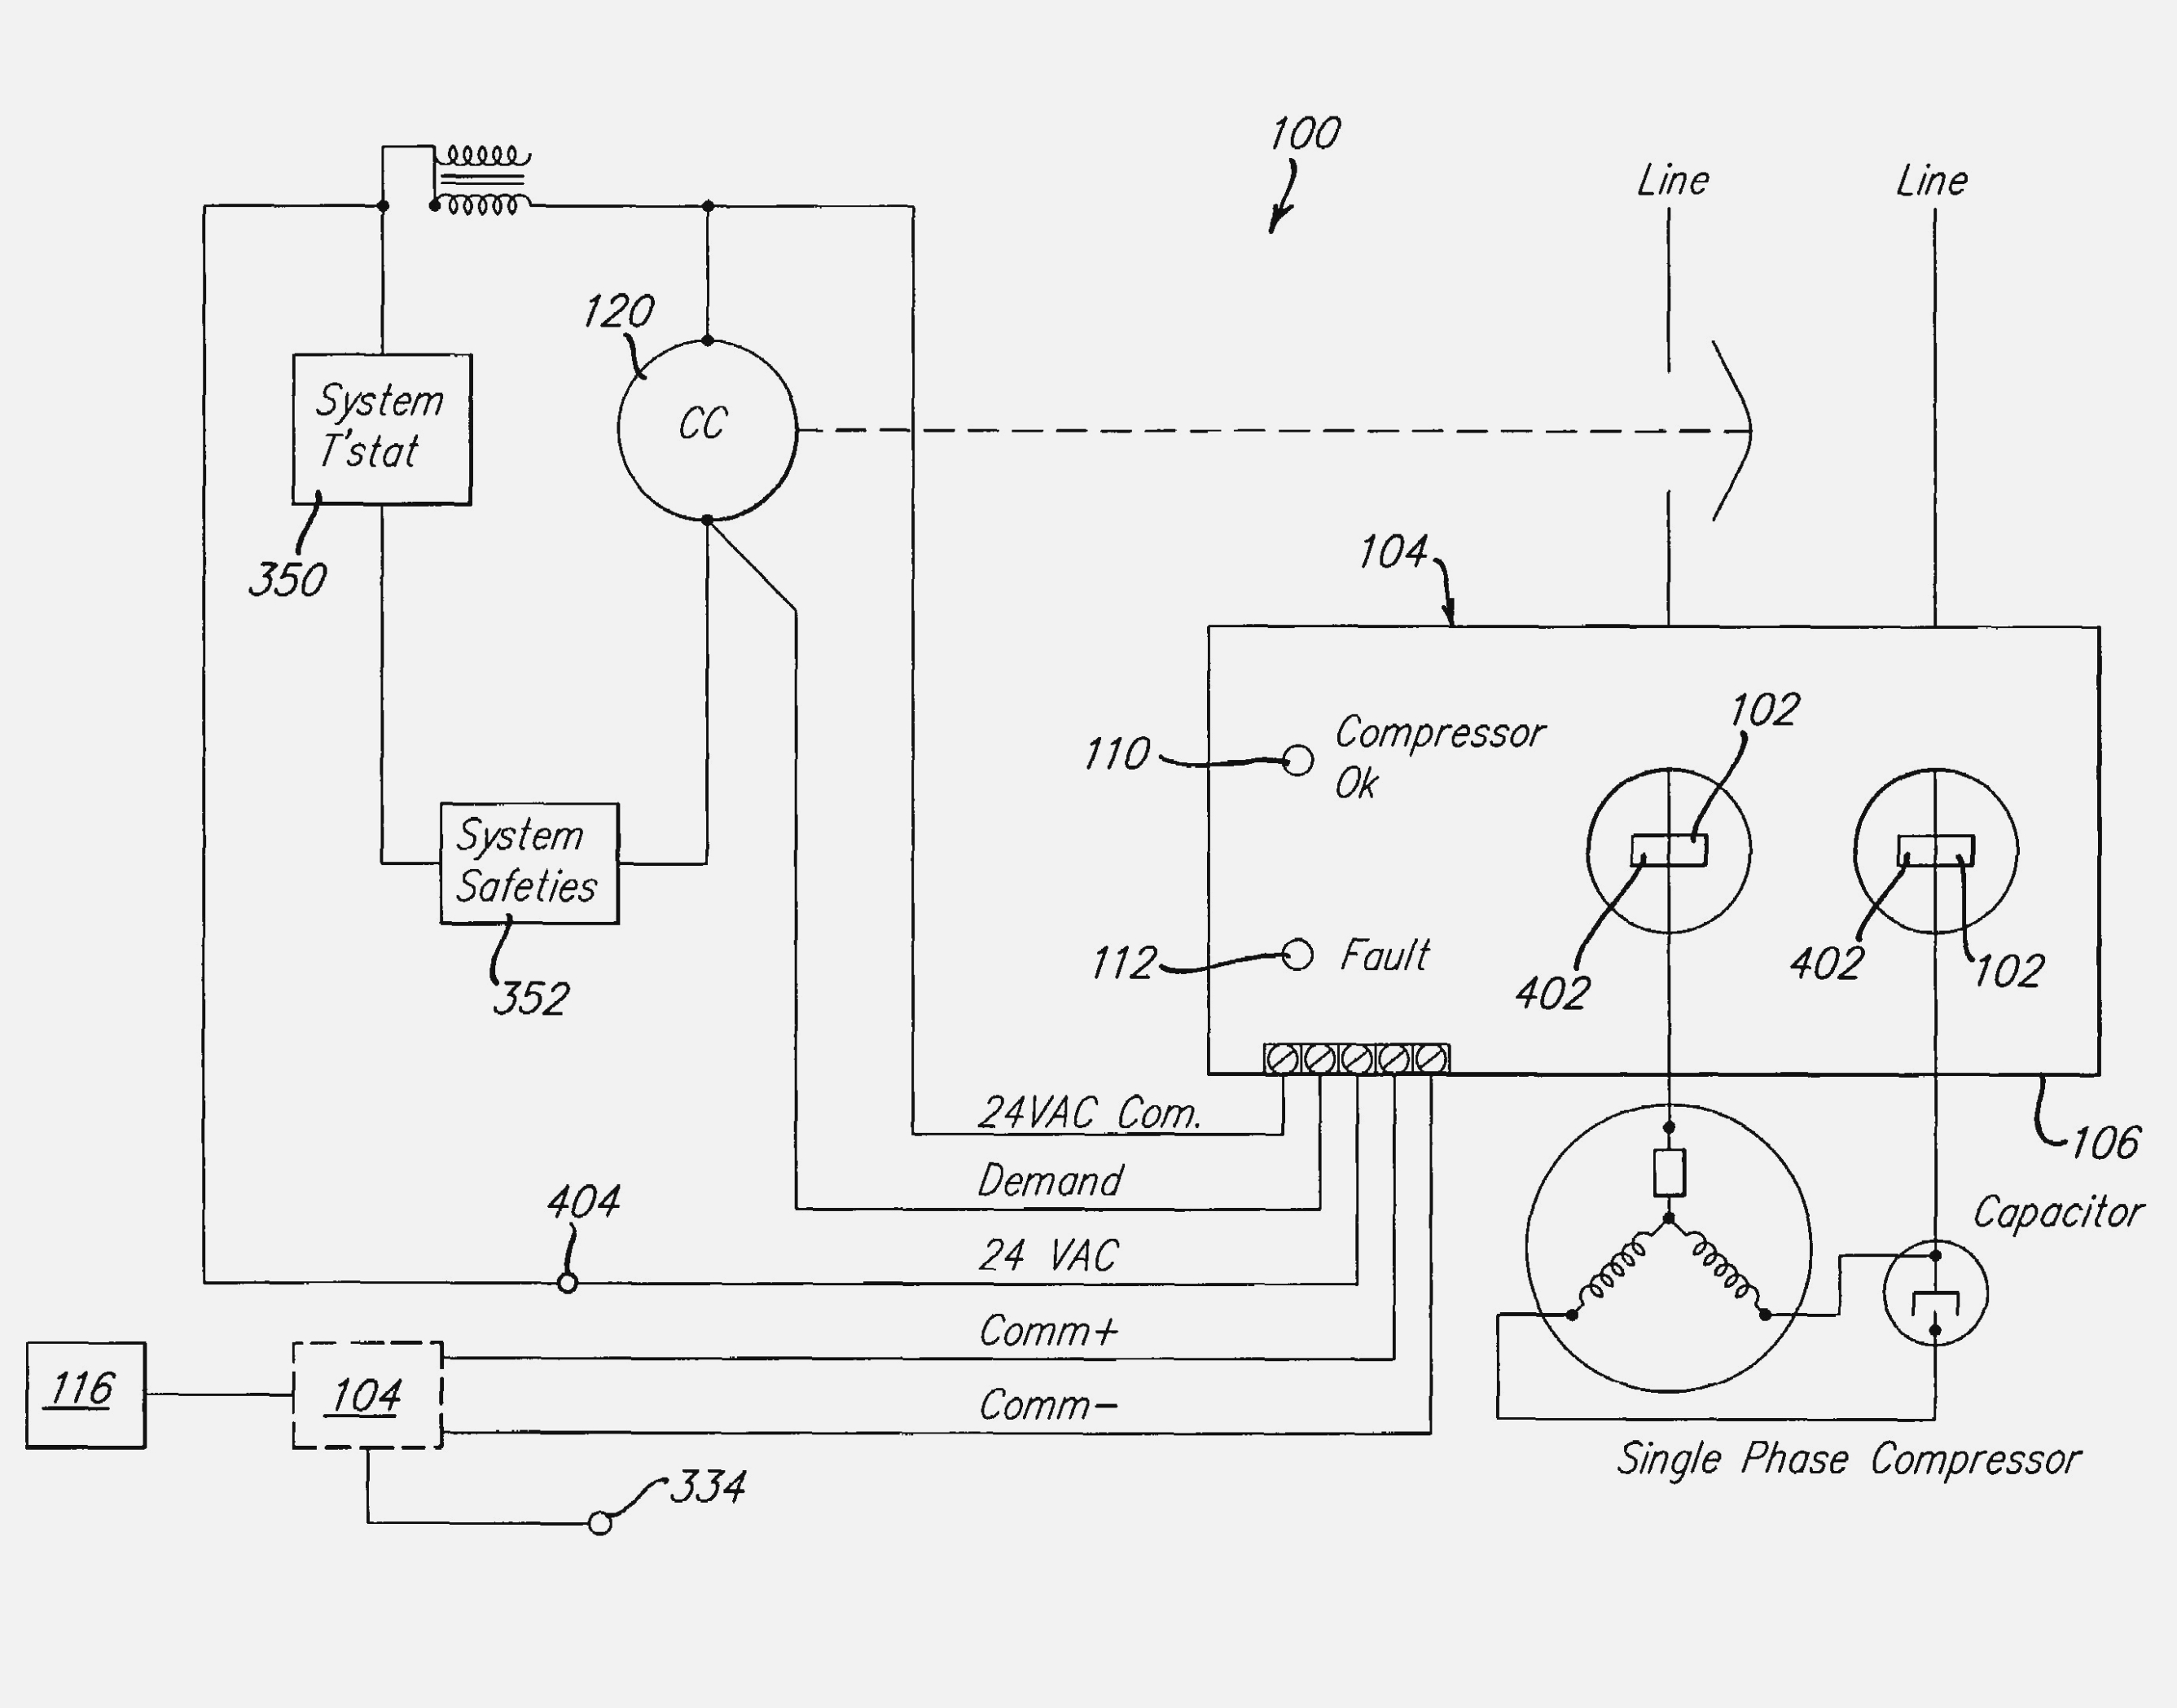 Embraco Compressor Start Capacitor Wiring   Manual E-Books - Embraco Compressor Wiring Diagram